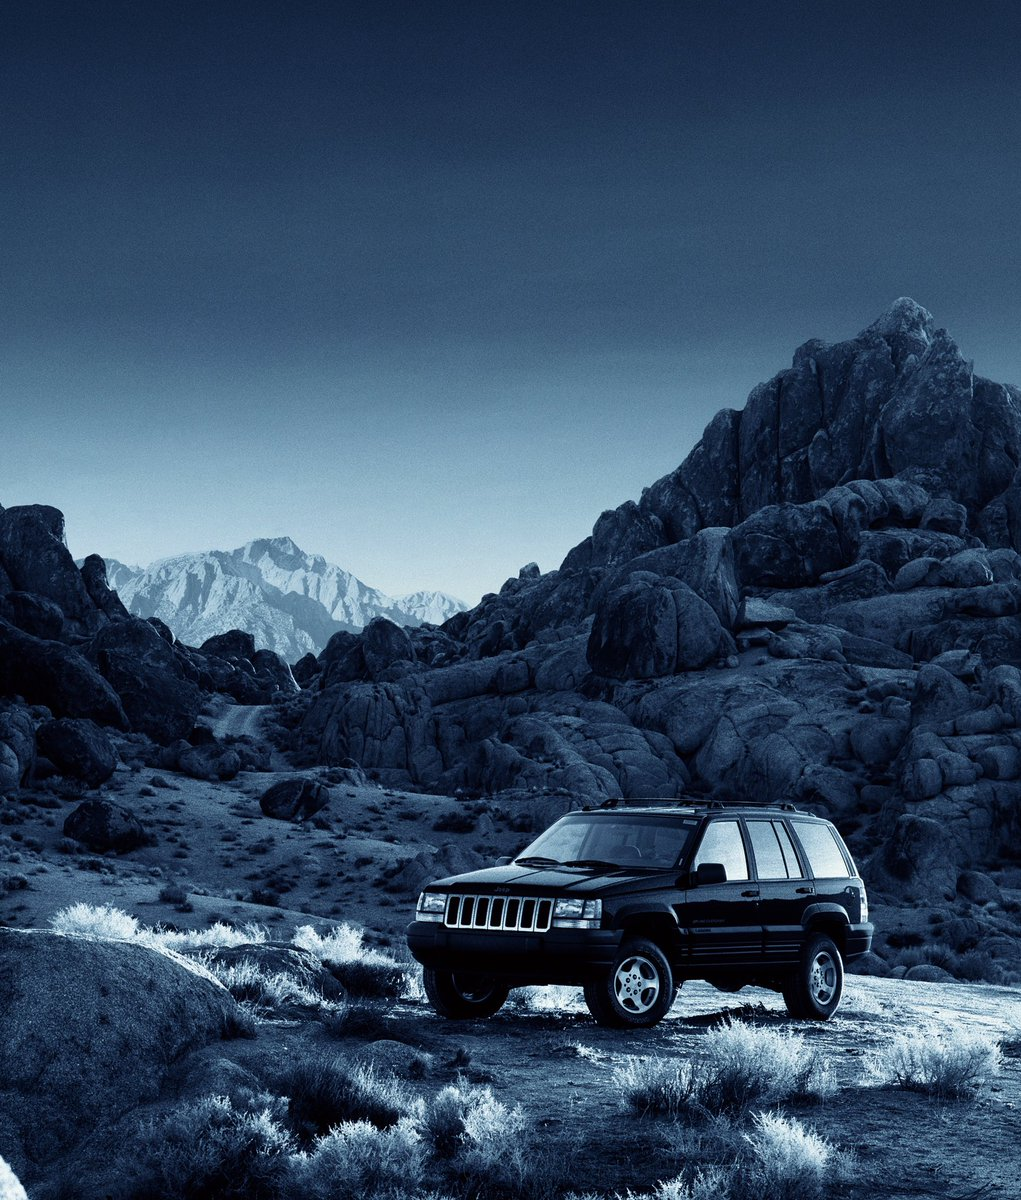 B & W press ads pt 4 #Analogue #Archive #Photography 1996 Back in the '90's who can forget those iconic #Jeep campaigns created by DFB London all over the press & billboards. So my photographic ad campaign journey with Jeep started in the Alabama Hills, CA #locationphotographypic.twitter.com/jWB3o1k9RB